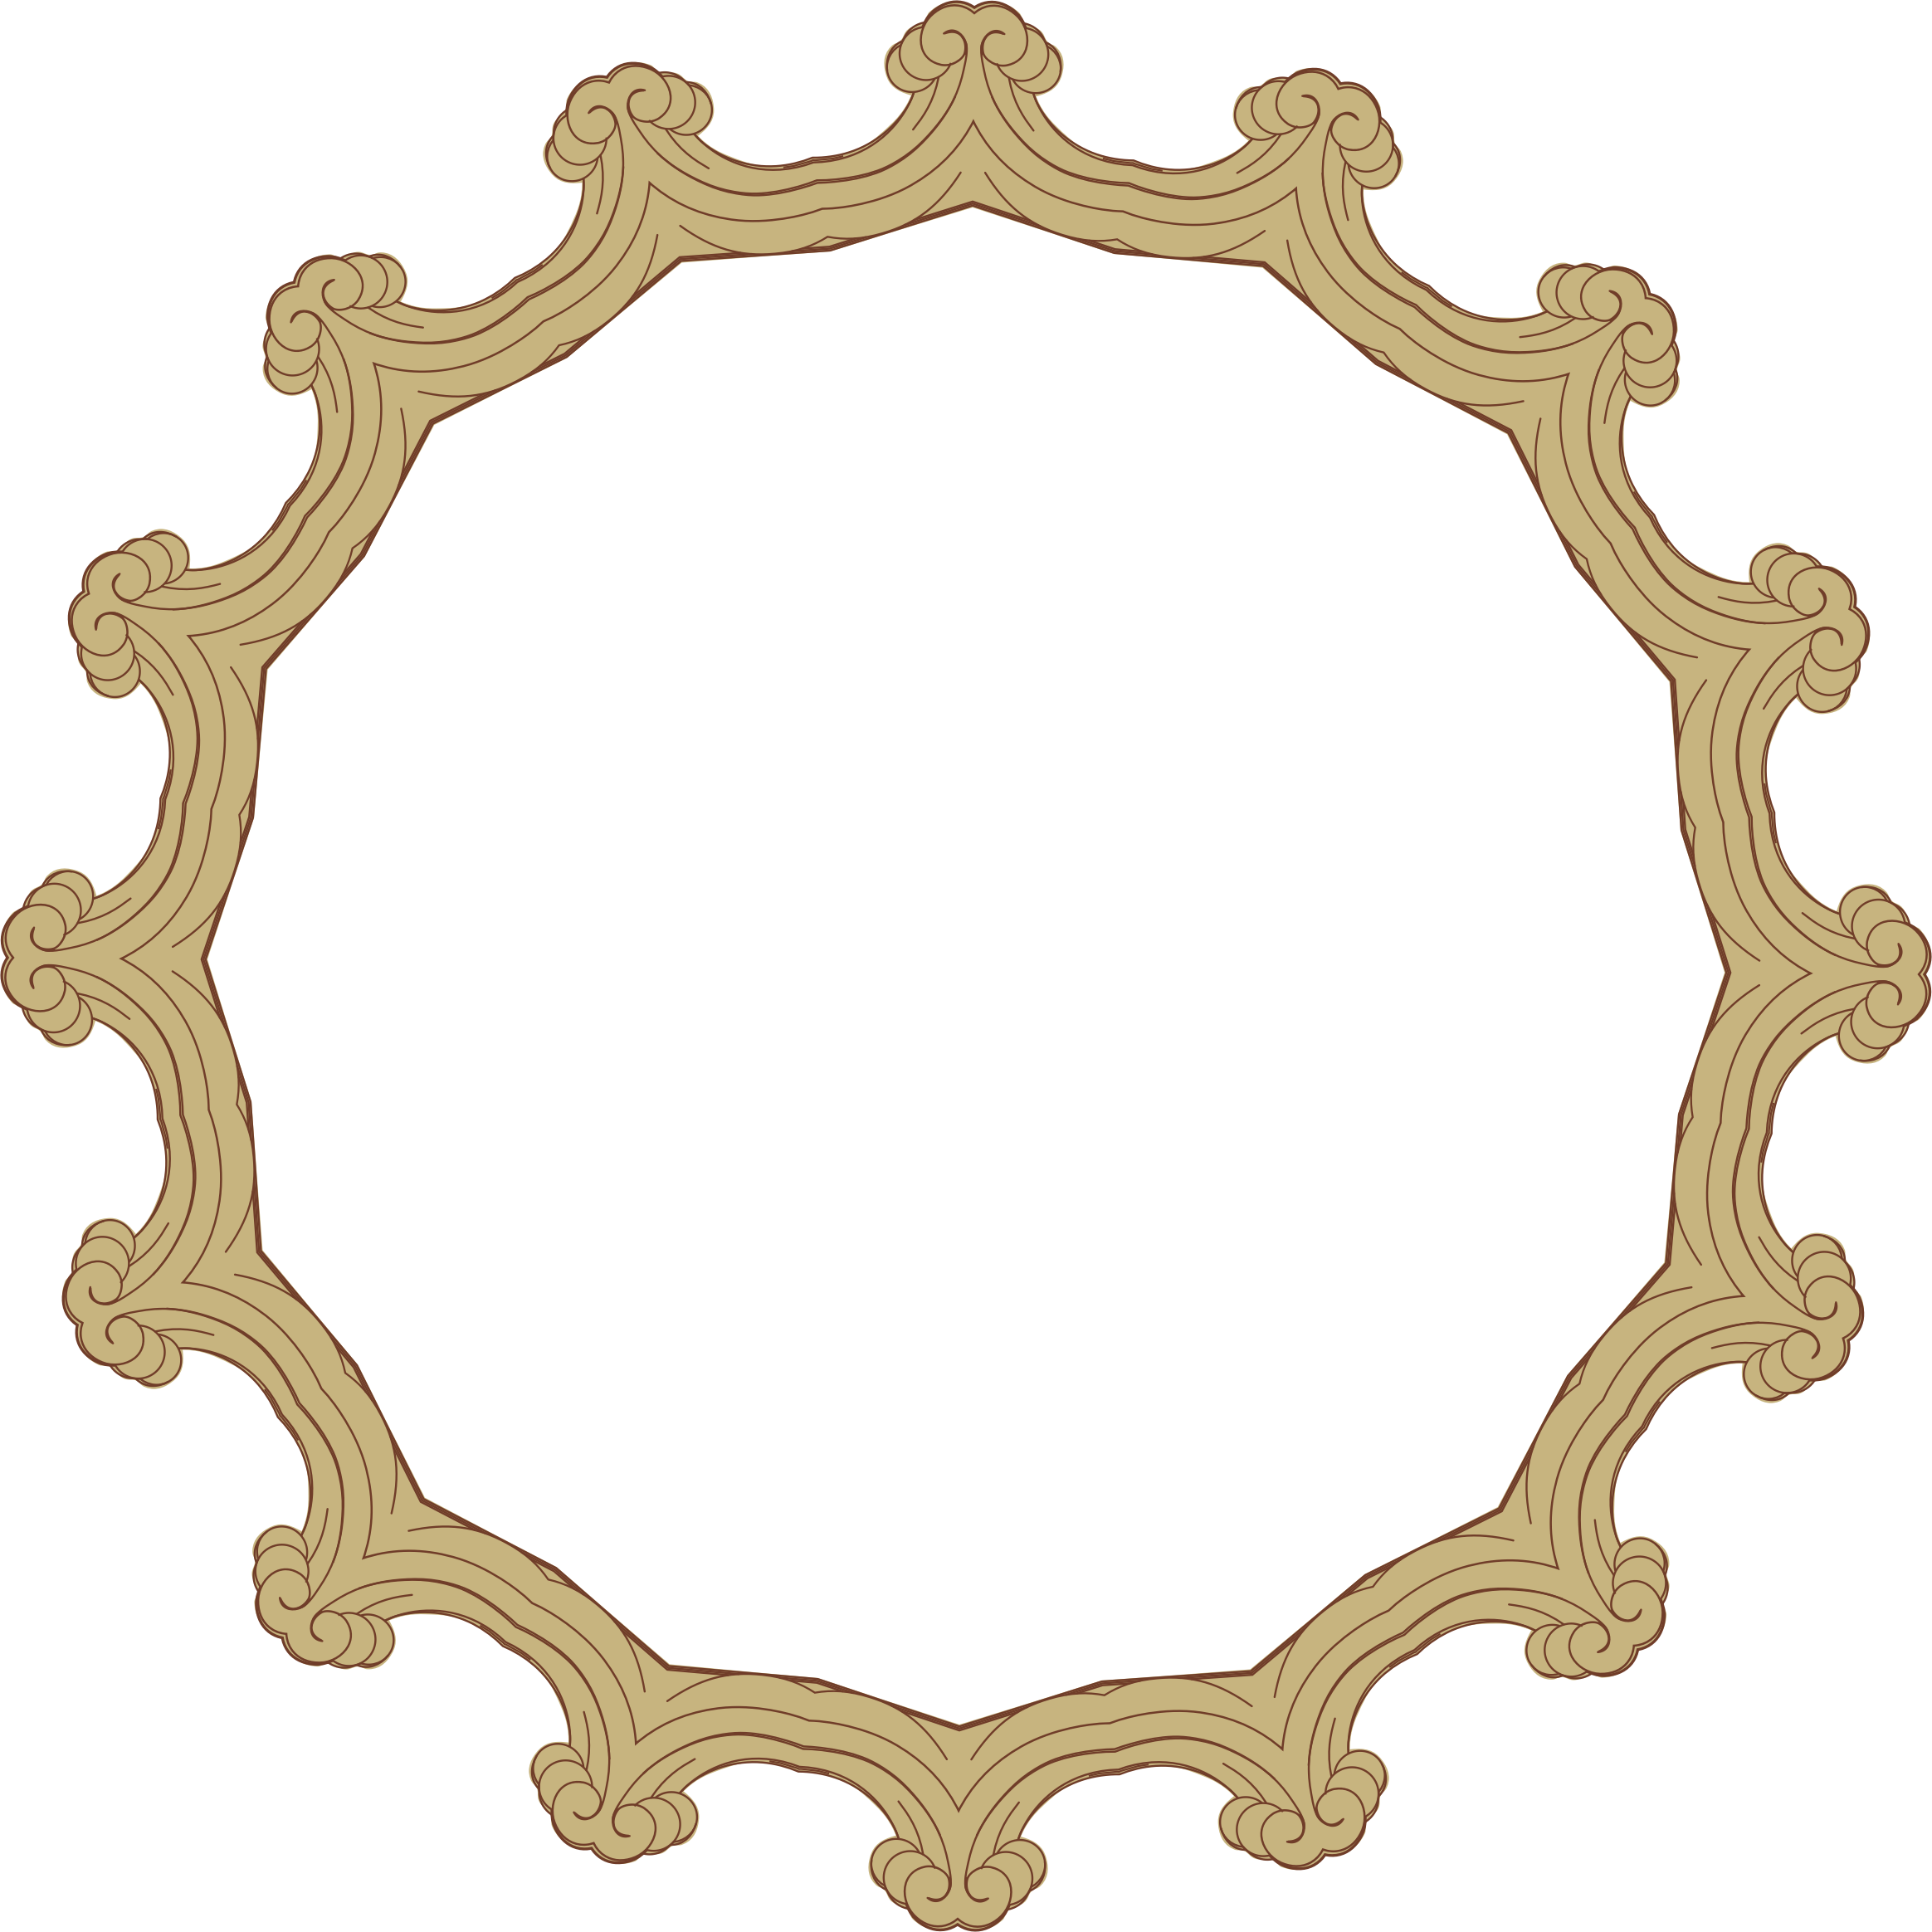 Ornate Frame 24 Derived 5 by GDJ